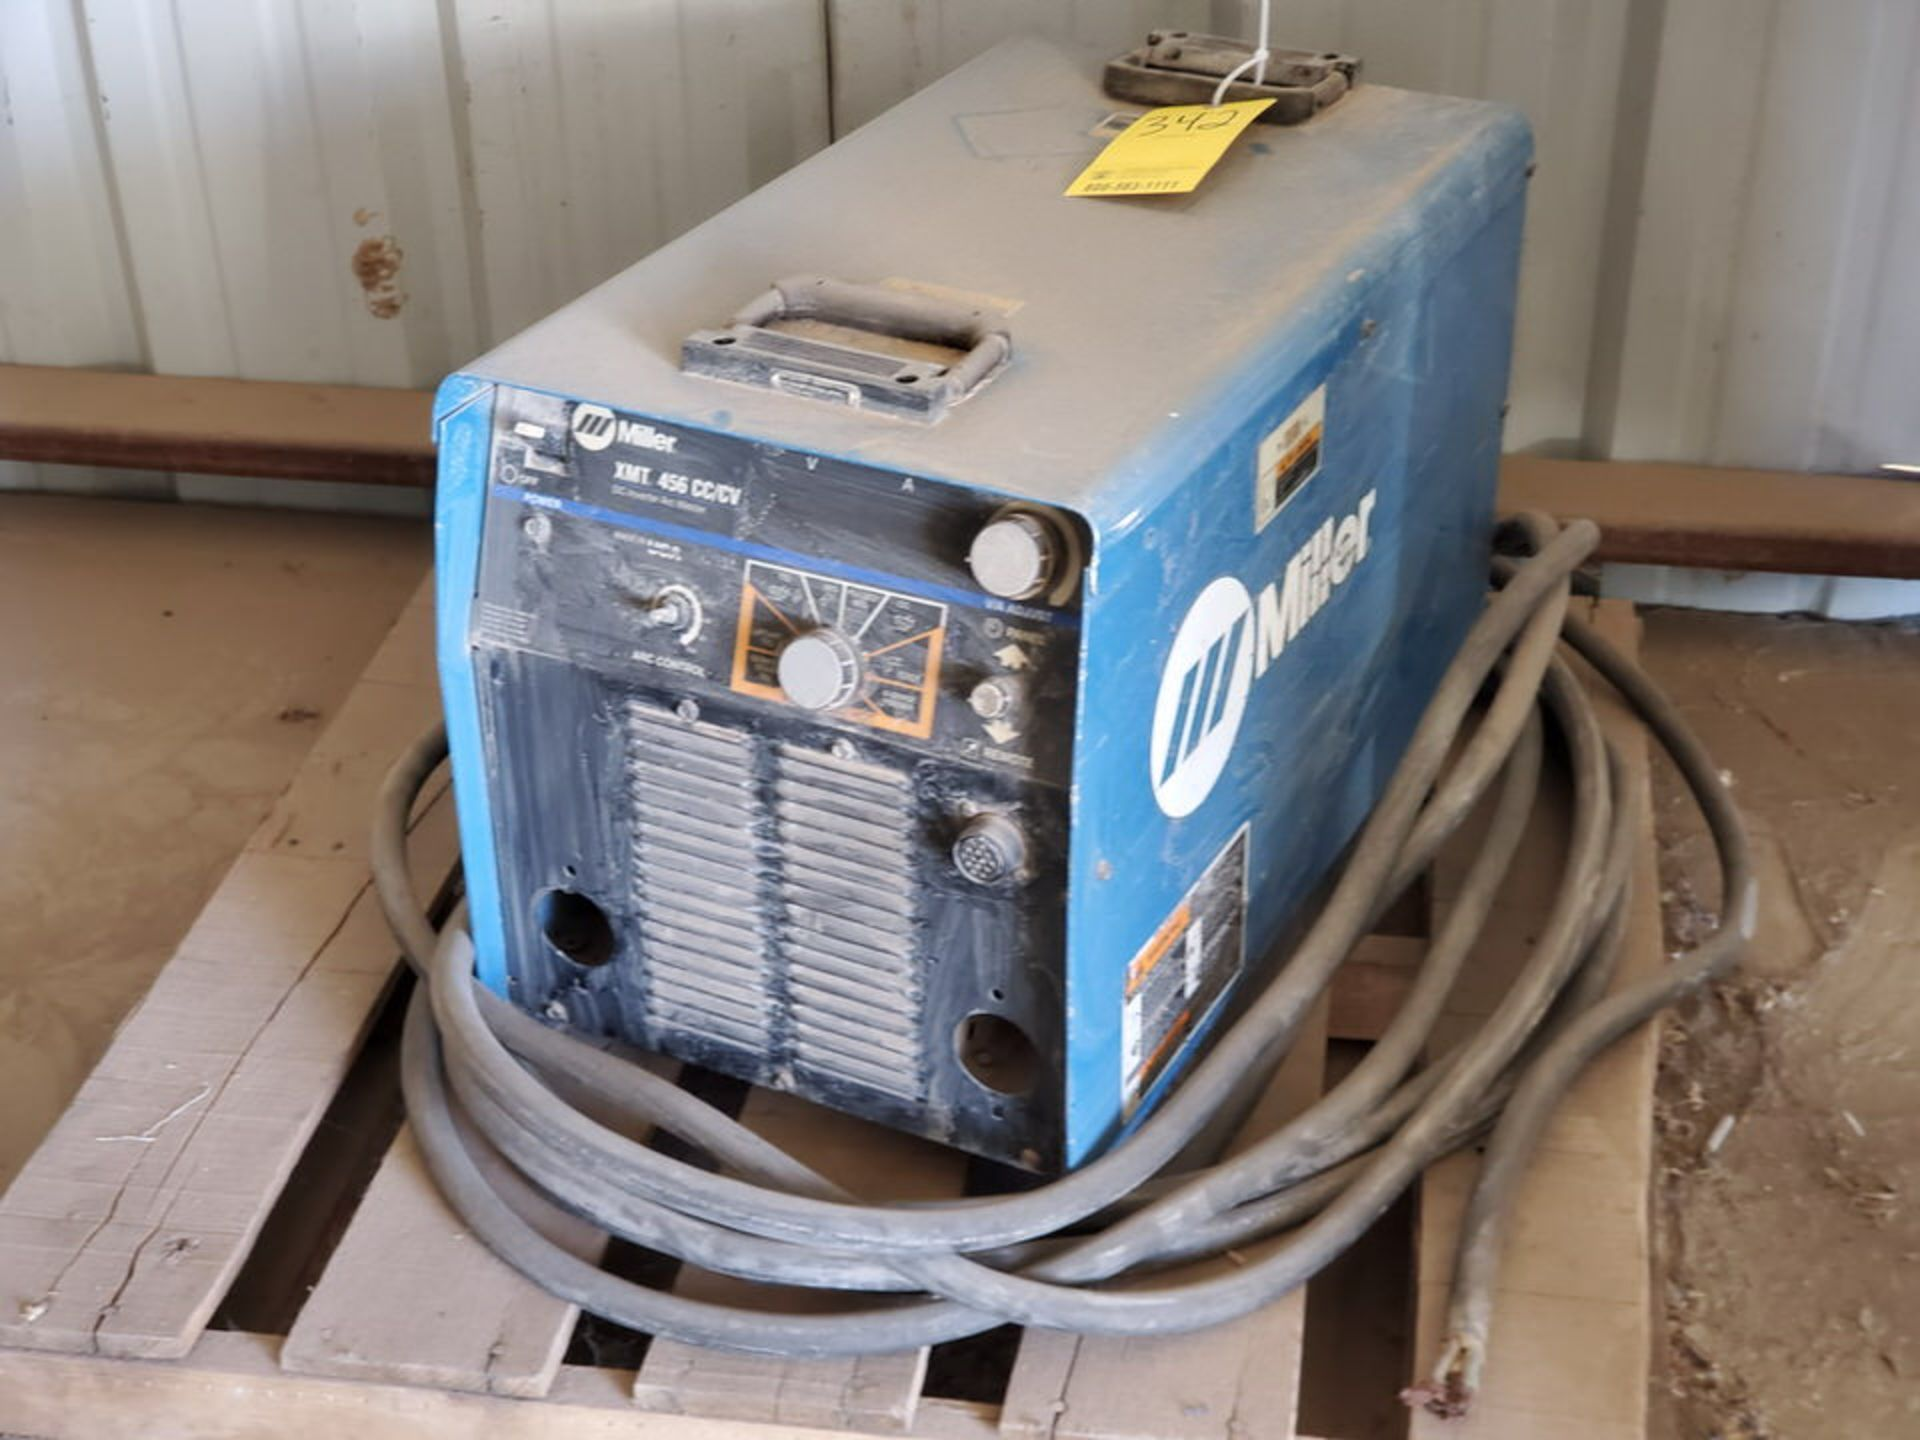 Miller XMT 456 Multiprocessing Welder 230/460V, 50.8/27.8A, 3PH, 60HZ